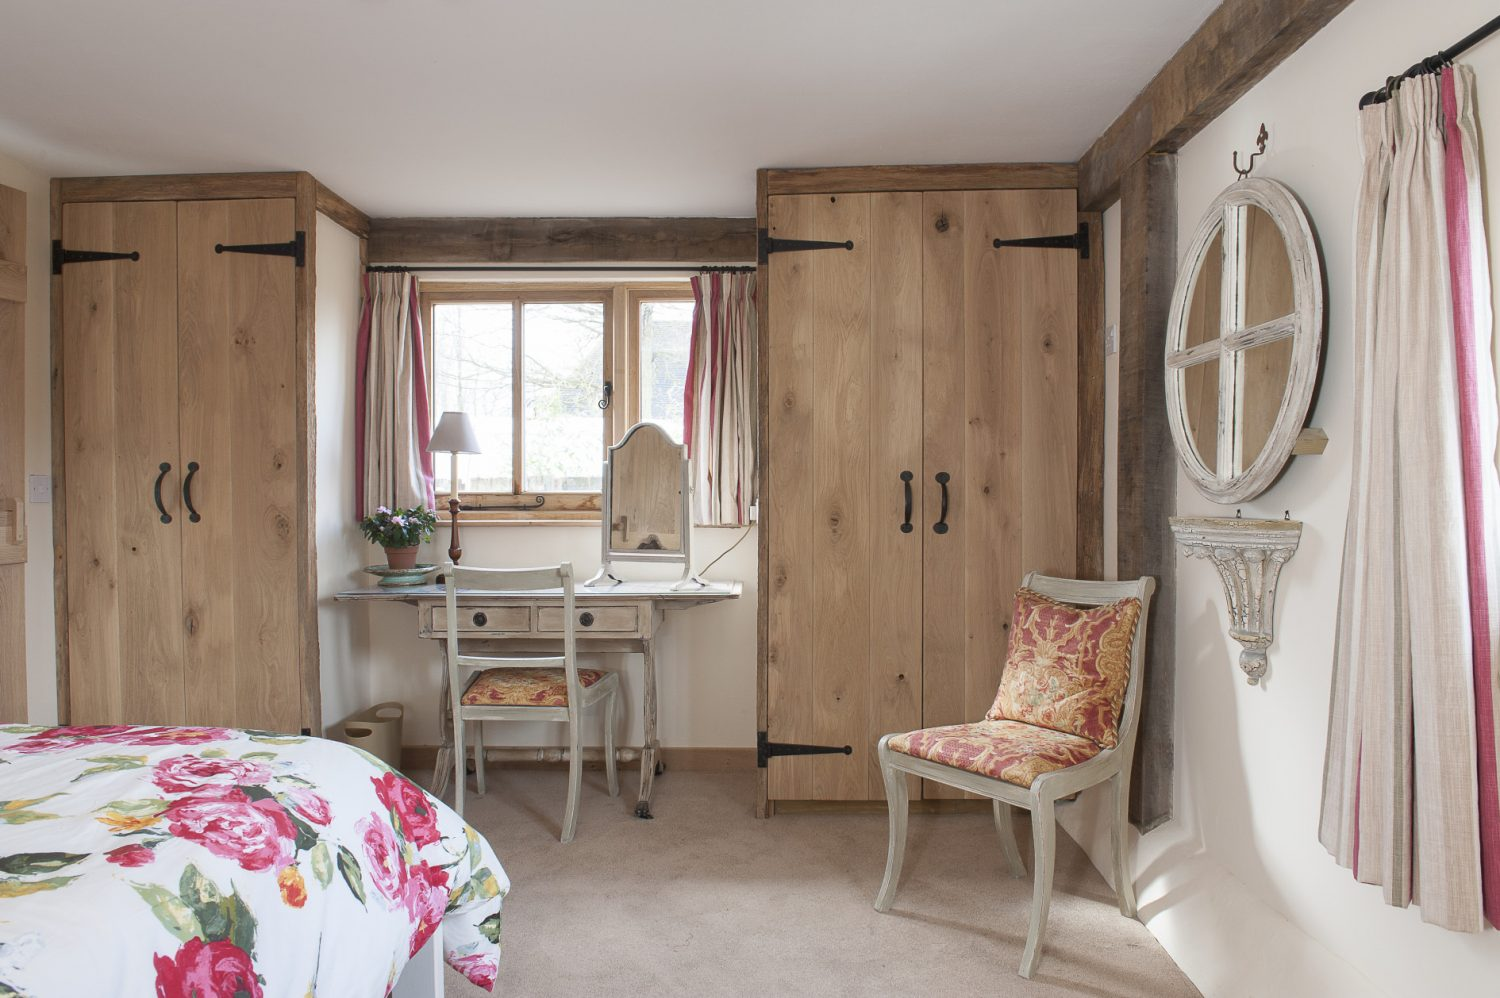 """In the main bedroom the old oak-doored built-in cupboards are spacious enough to conceal a regiment of foot. """"Just because you're on holiday it doesn't mean you don't need storage space,"""" says Caroline..."""